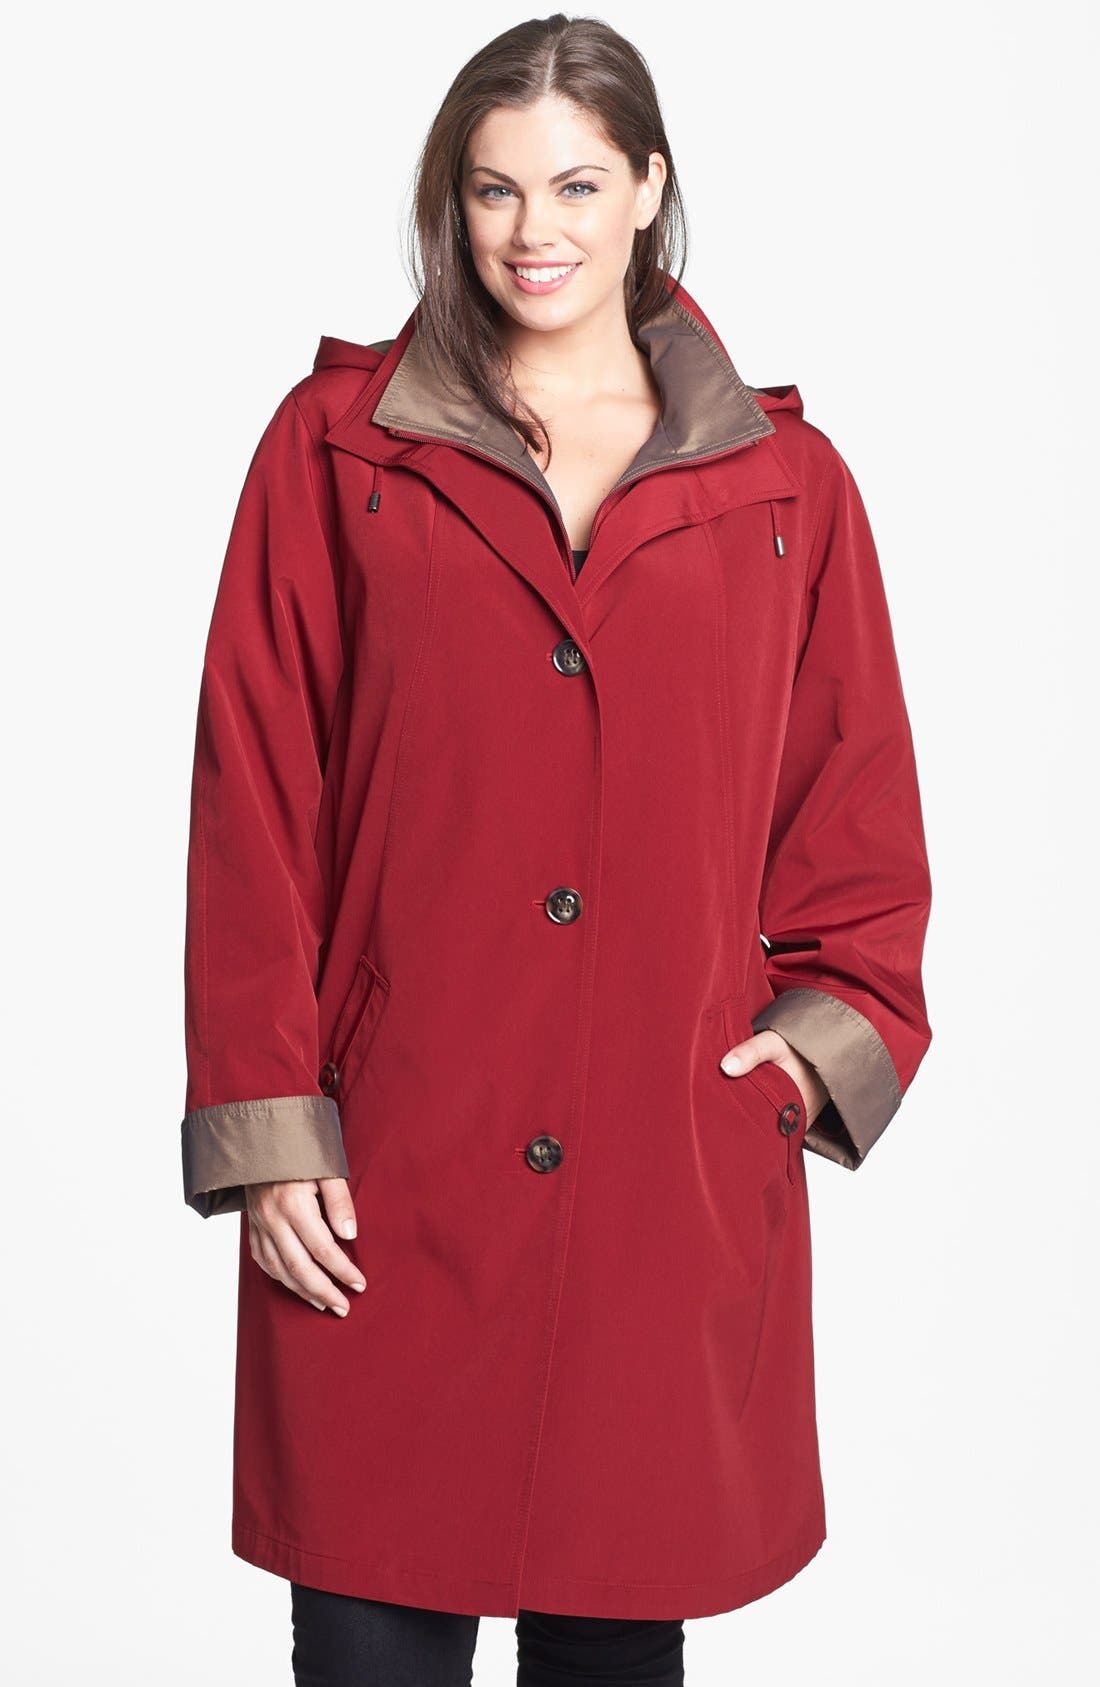 Alternate Image 1 Selected - Gallery A-Line Coat with Detachable Hood & Liner (Plus Size)